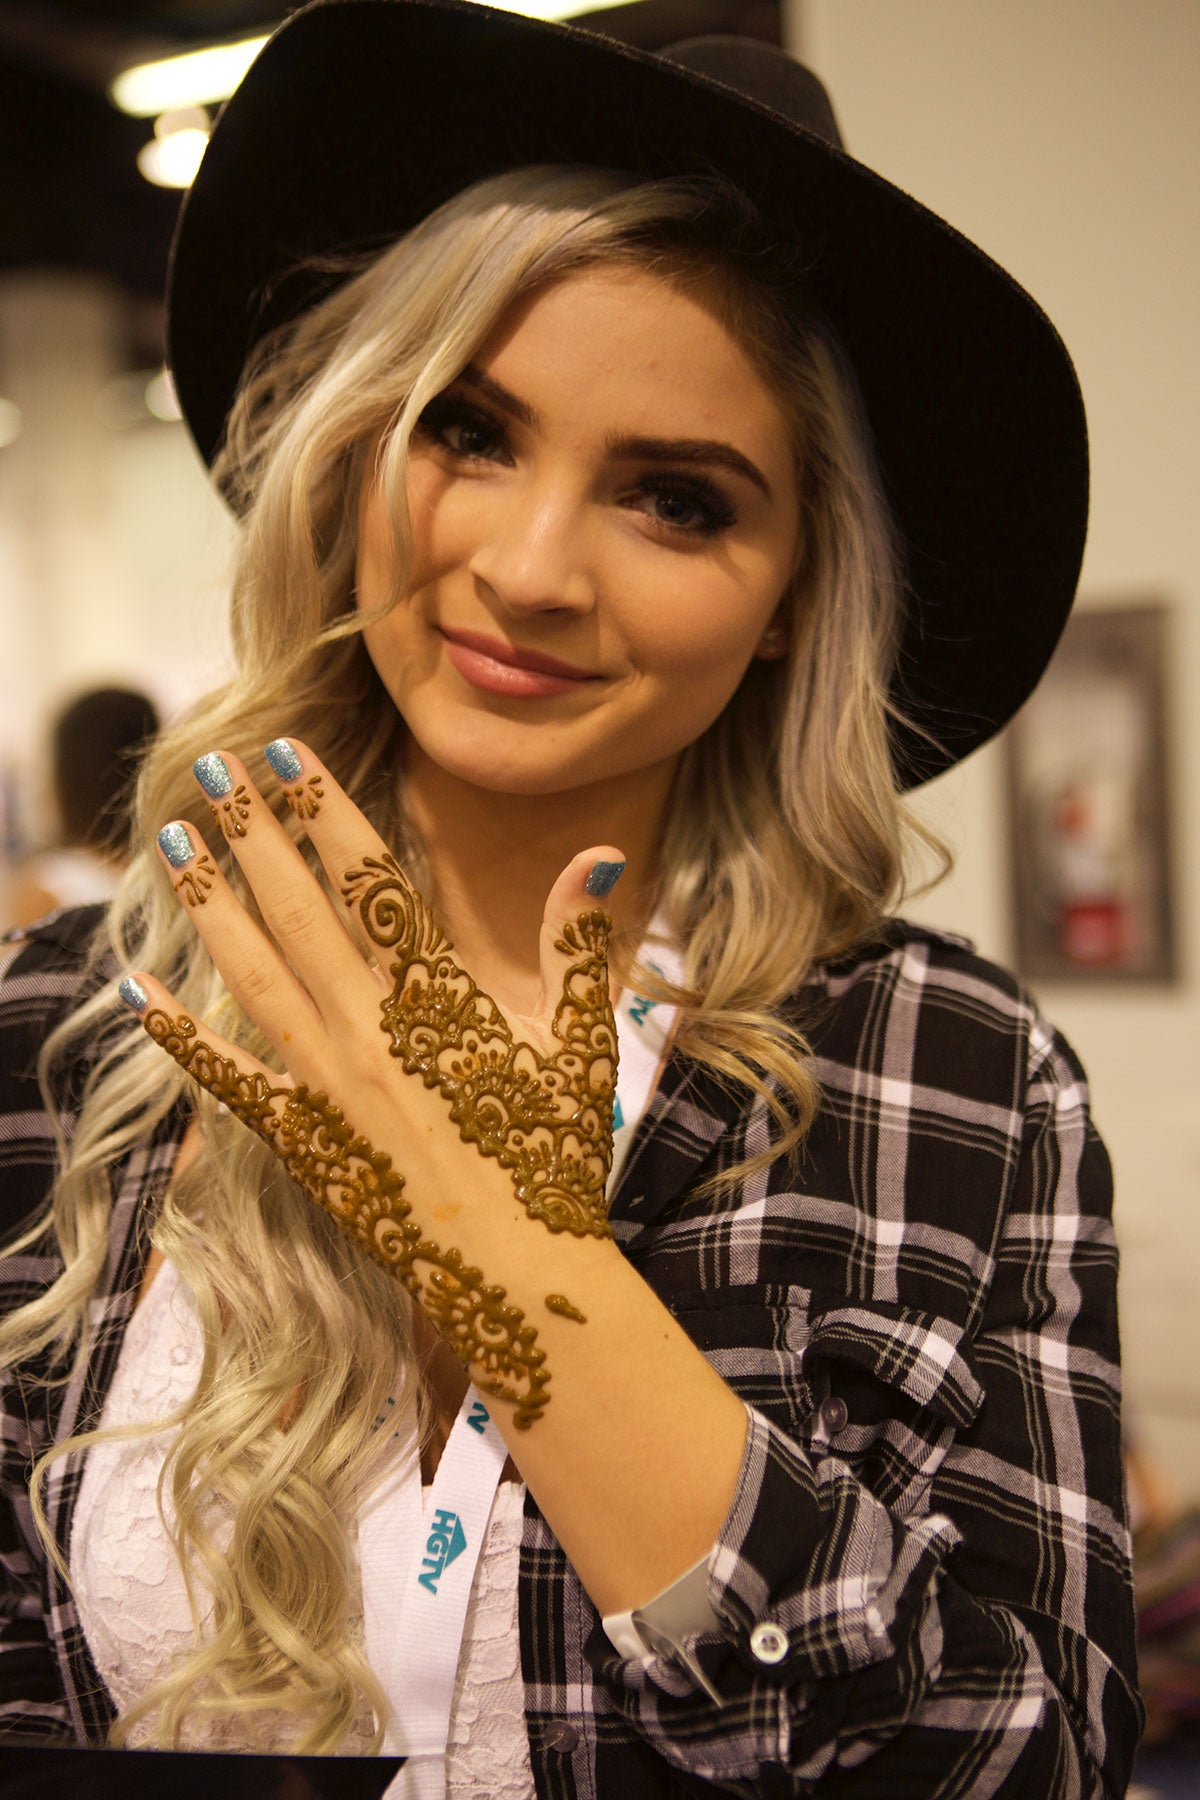 Young lady with henna tattoos on her fingers